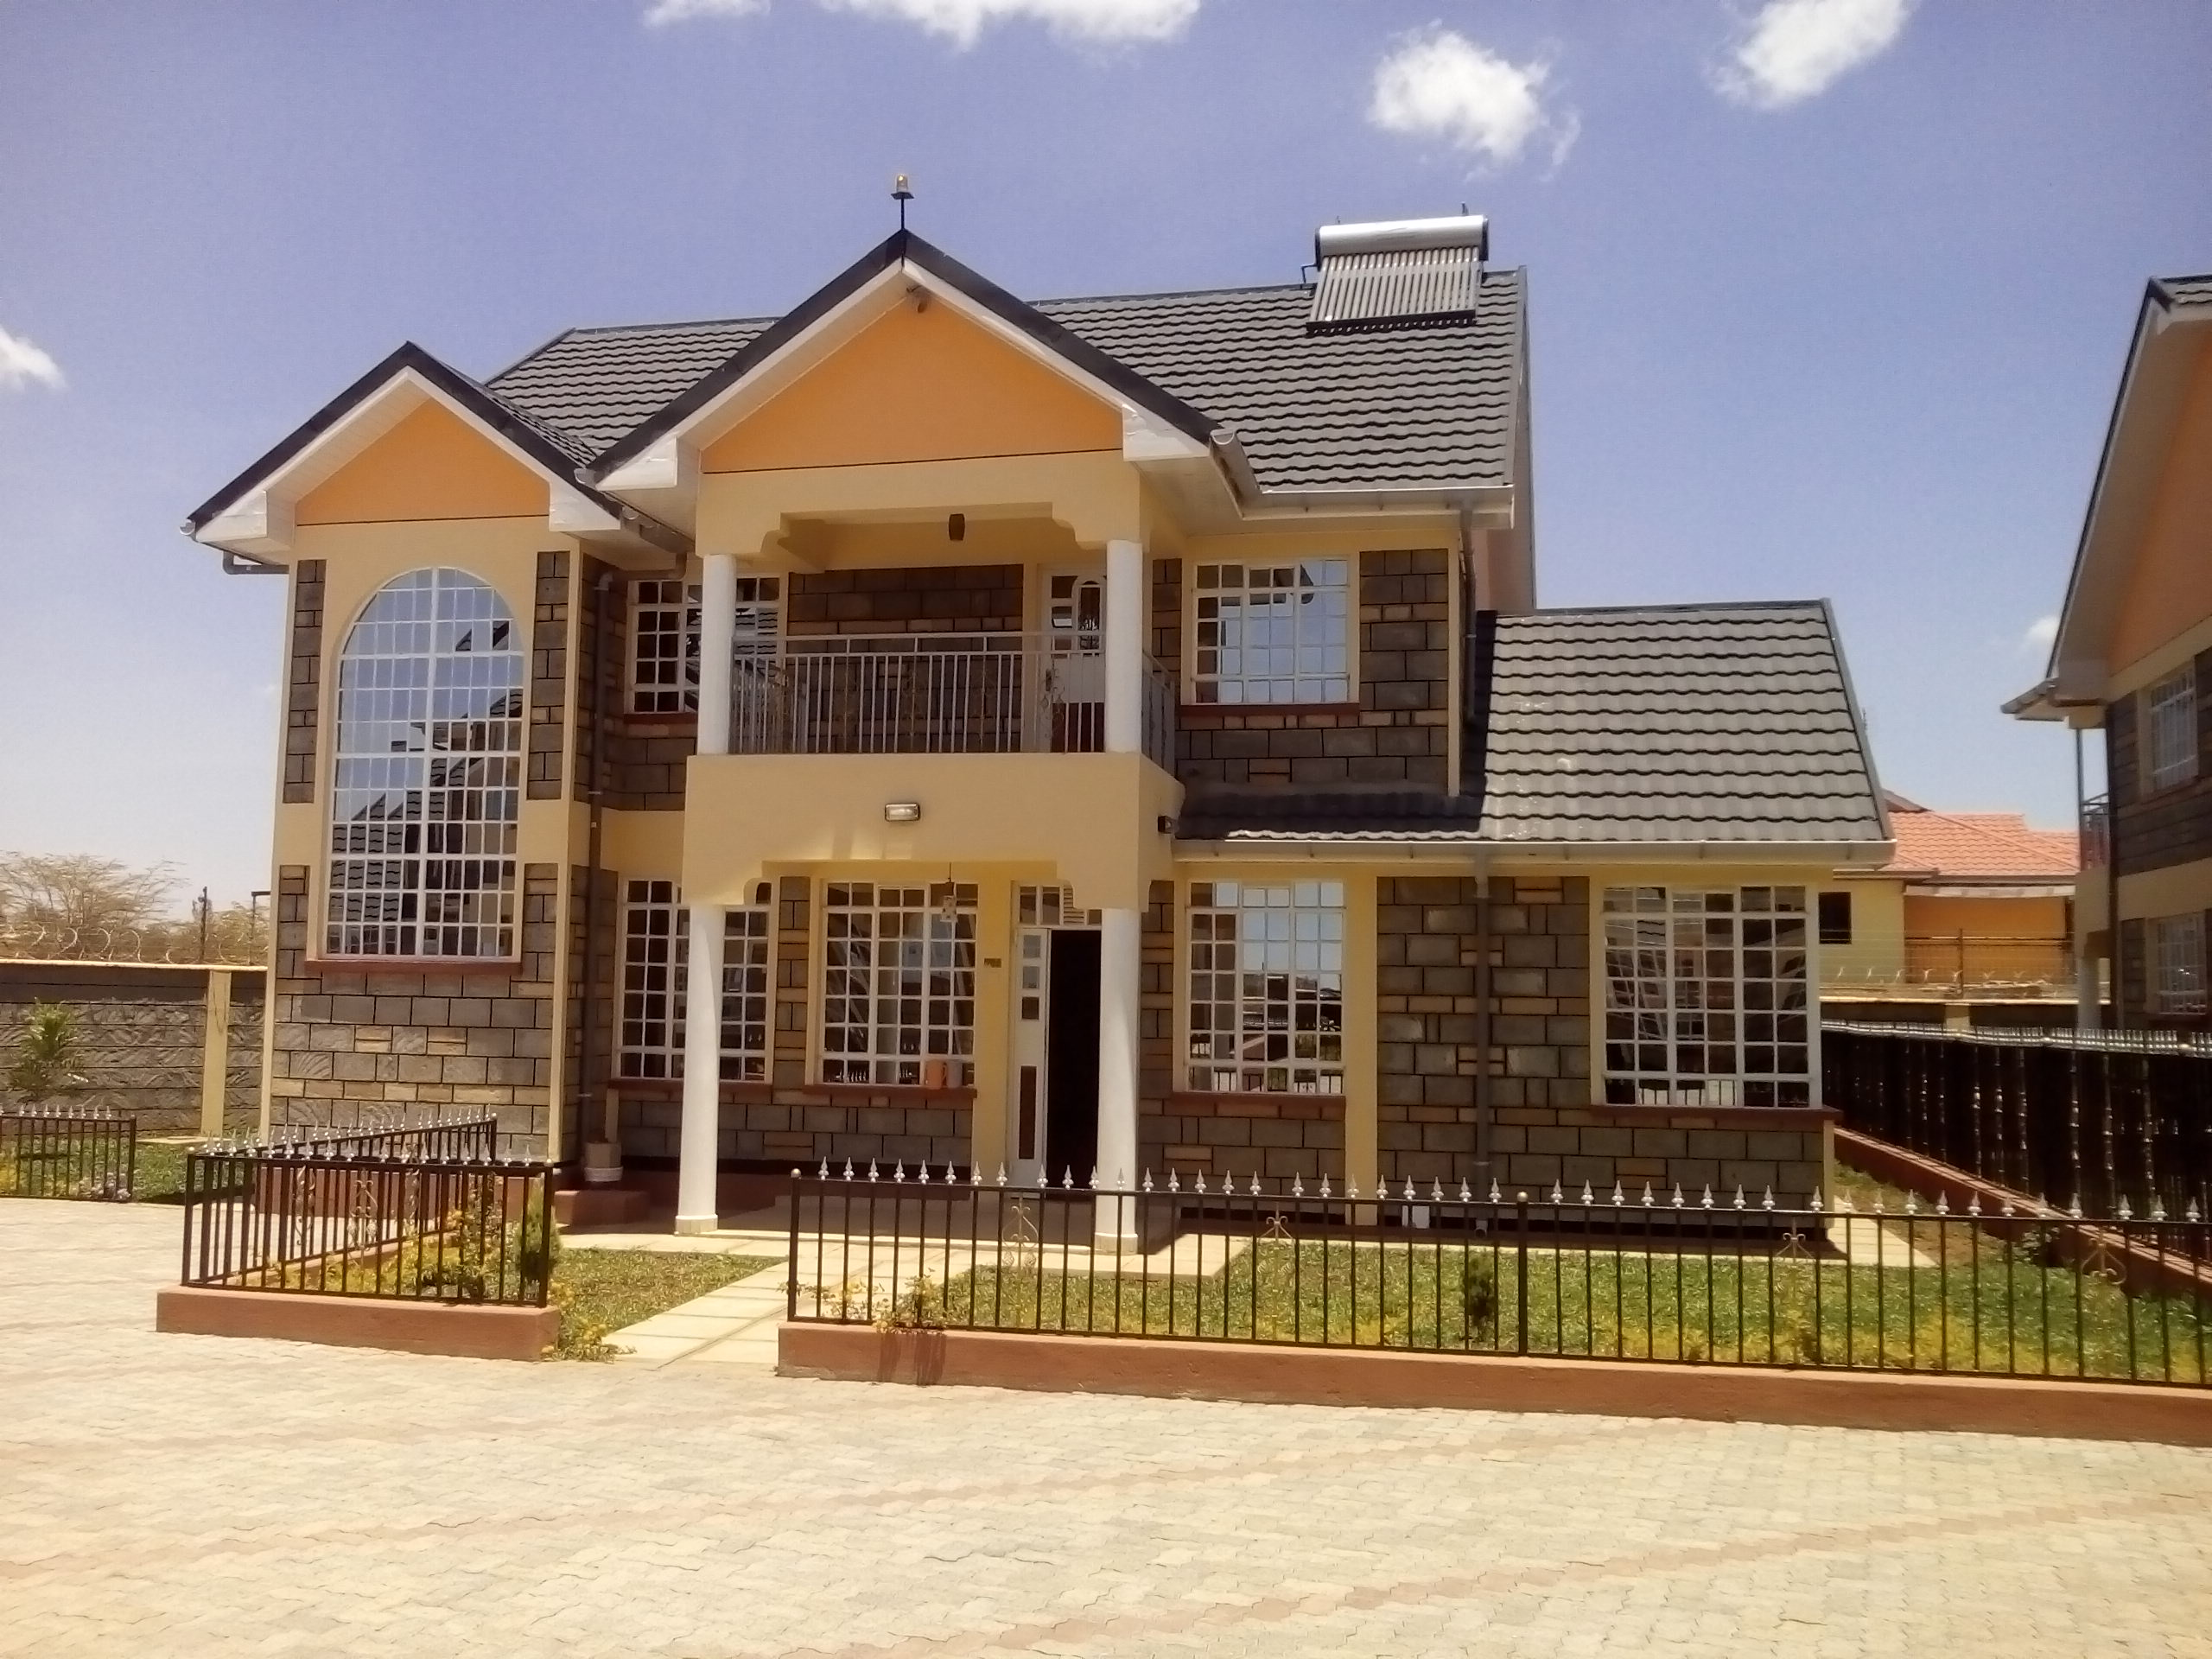 Types of houses in kenya modern house Modern house plans for sale